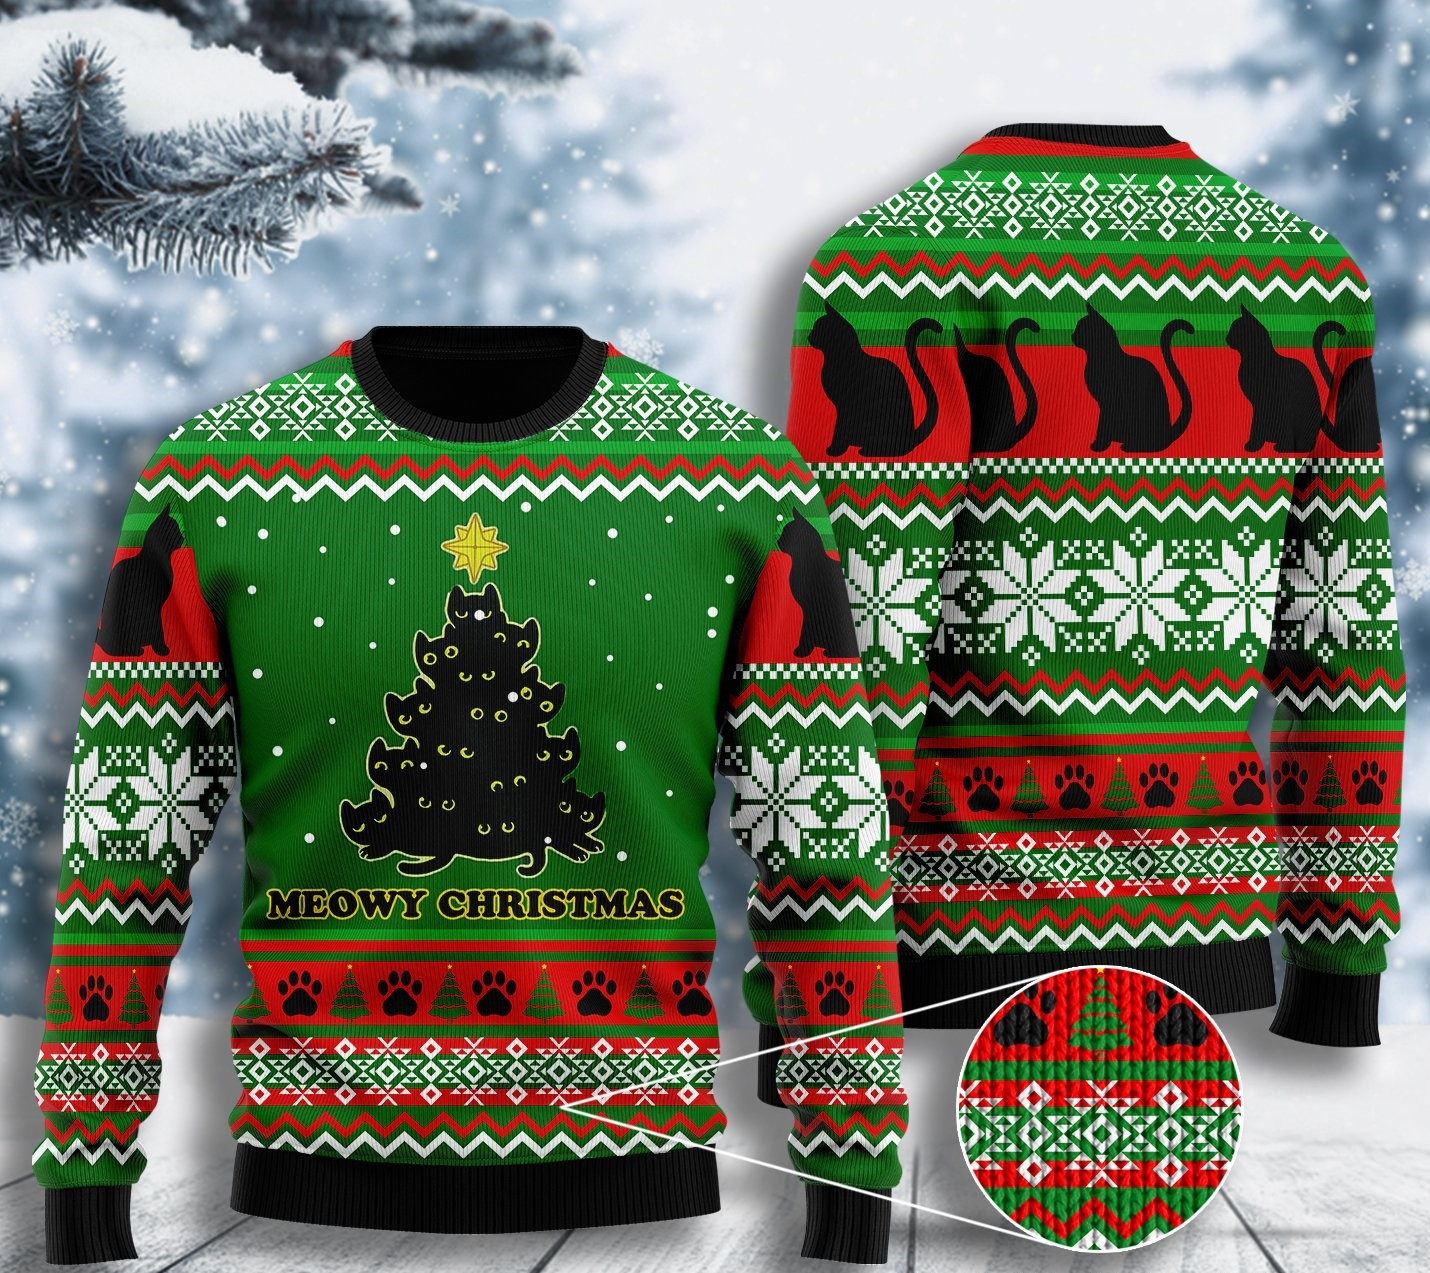 black cat meowy christmas tree all over printed ugly christmas sweater 2 - Copy (3)